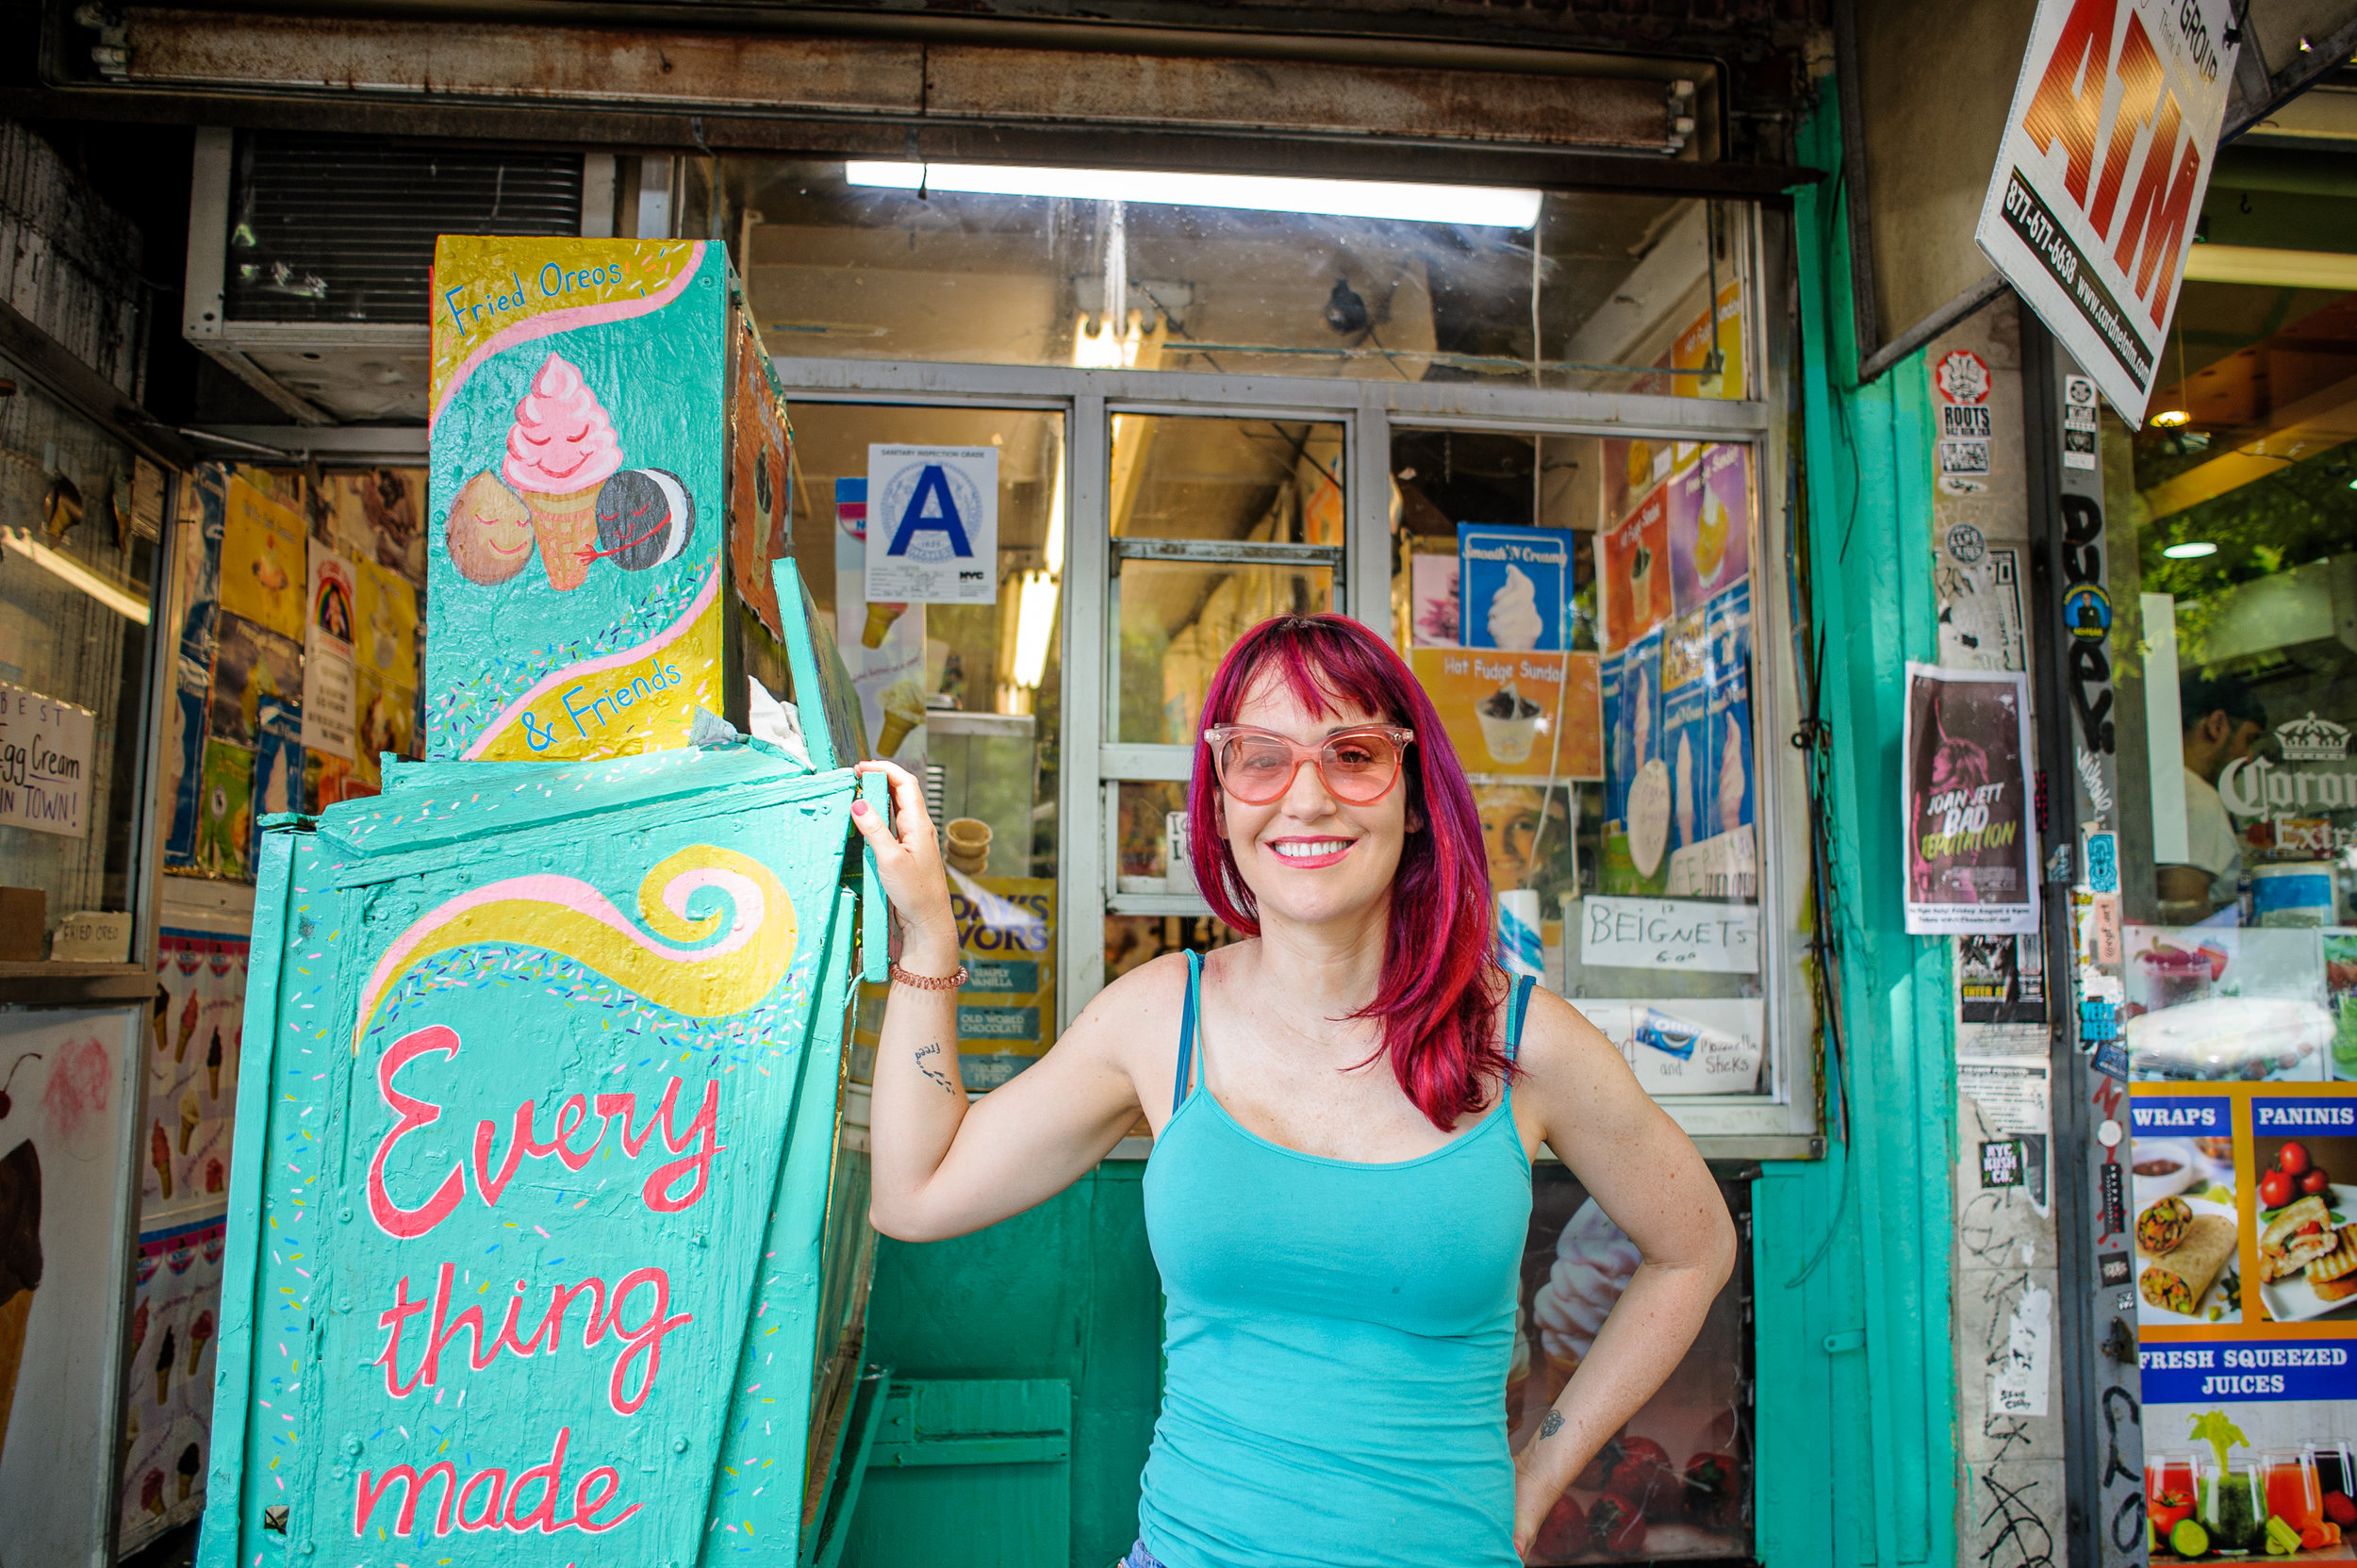 Me outside of Ray's Candy Store in the East Village. (I did not plan to match the colors but it happens;).